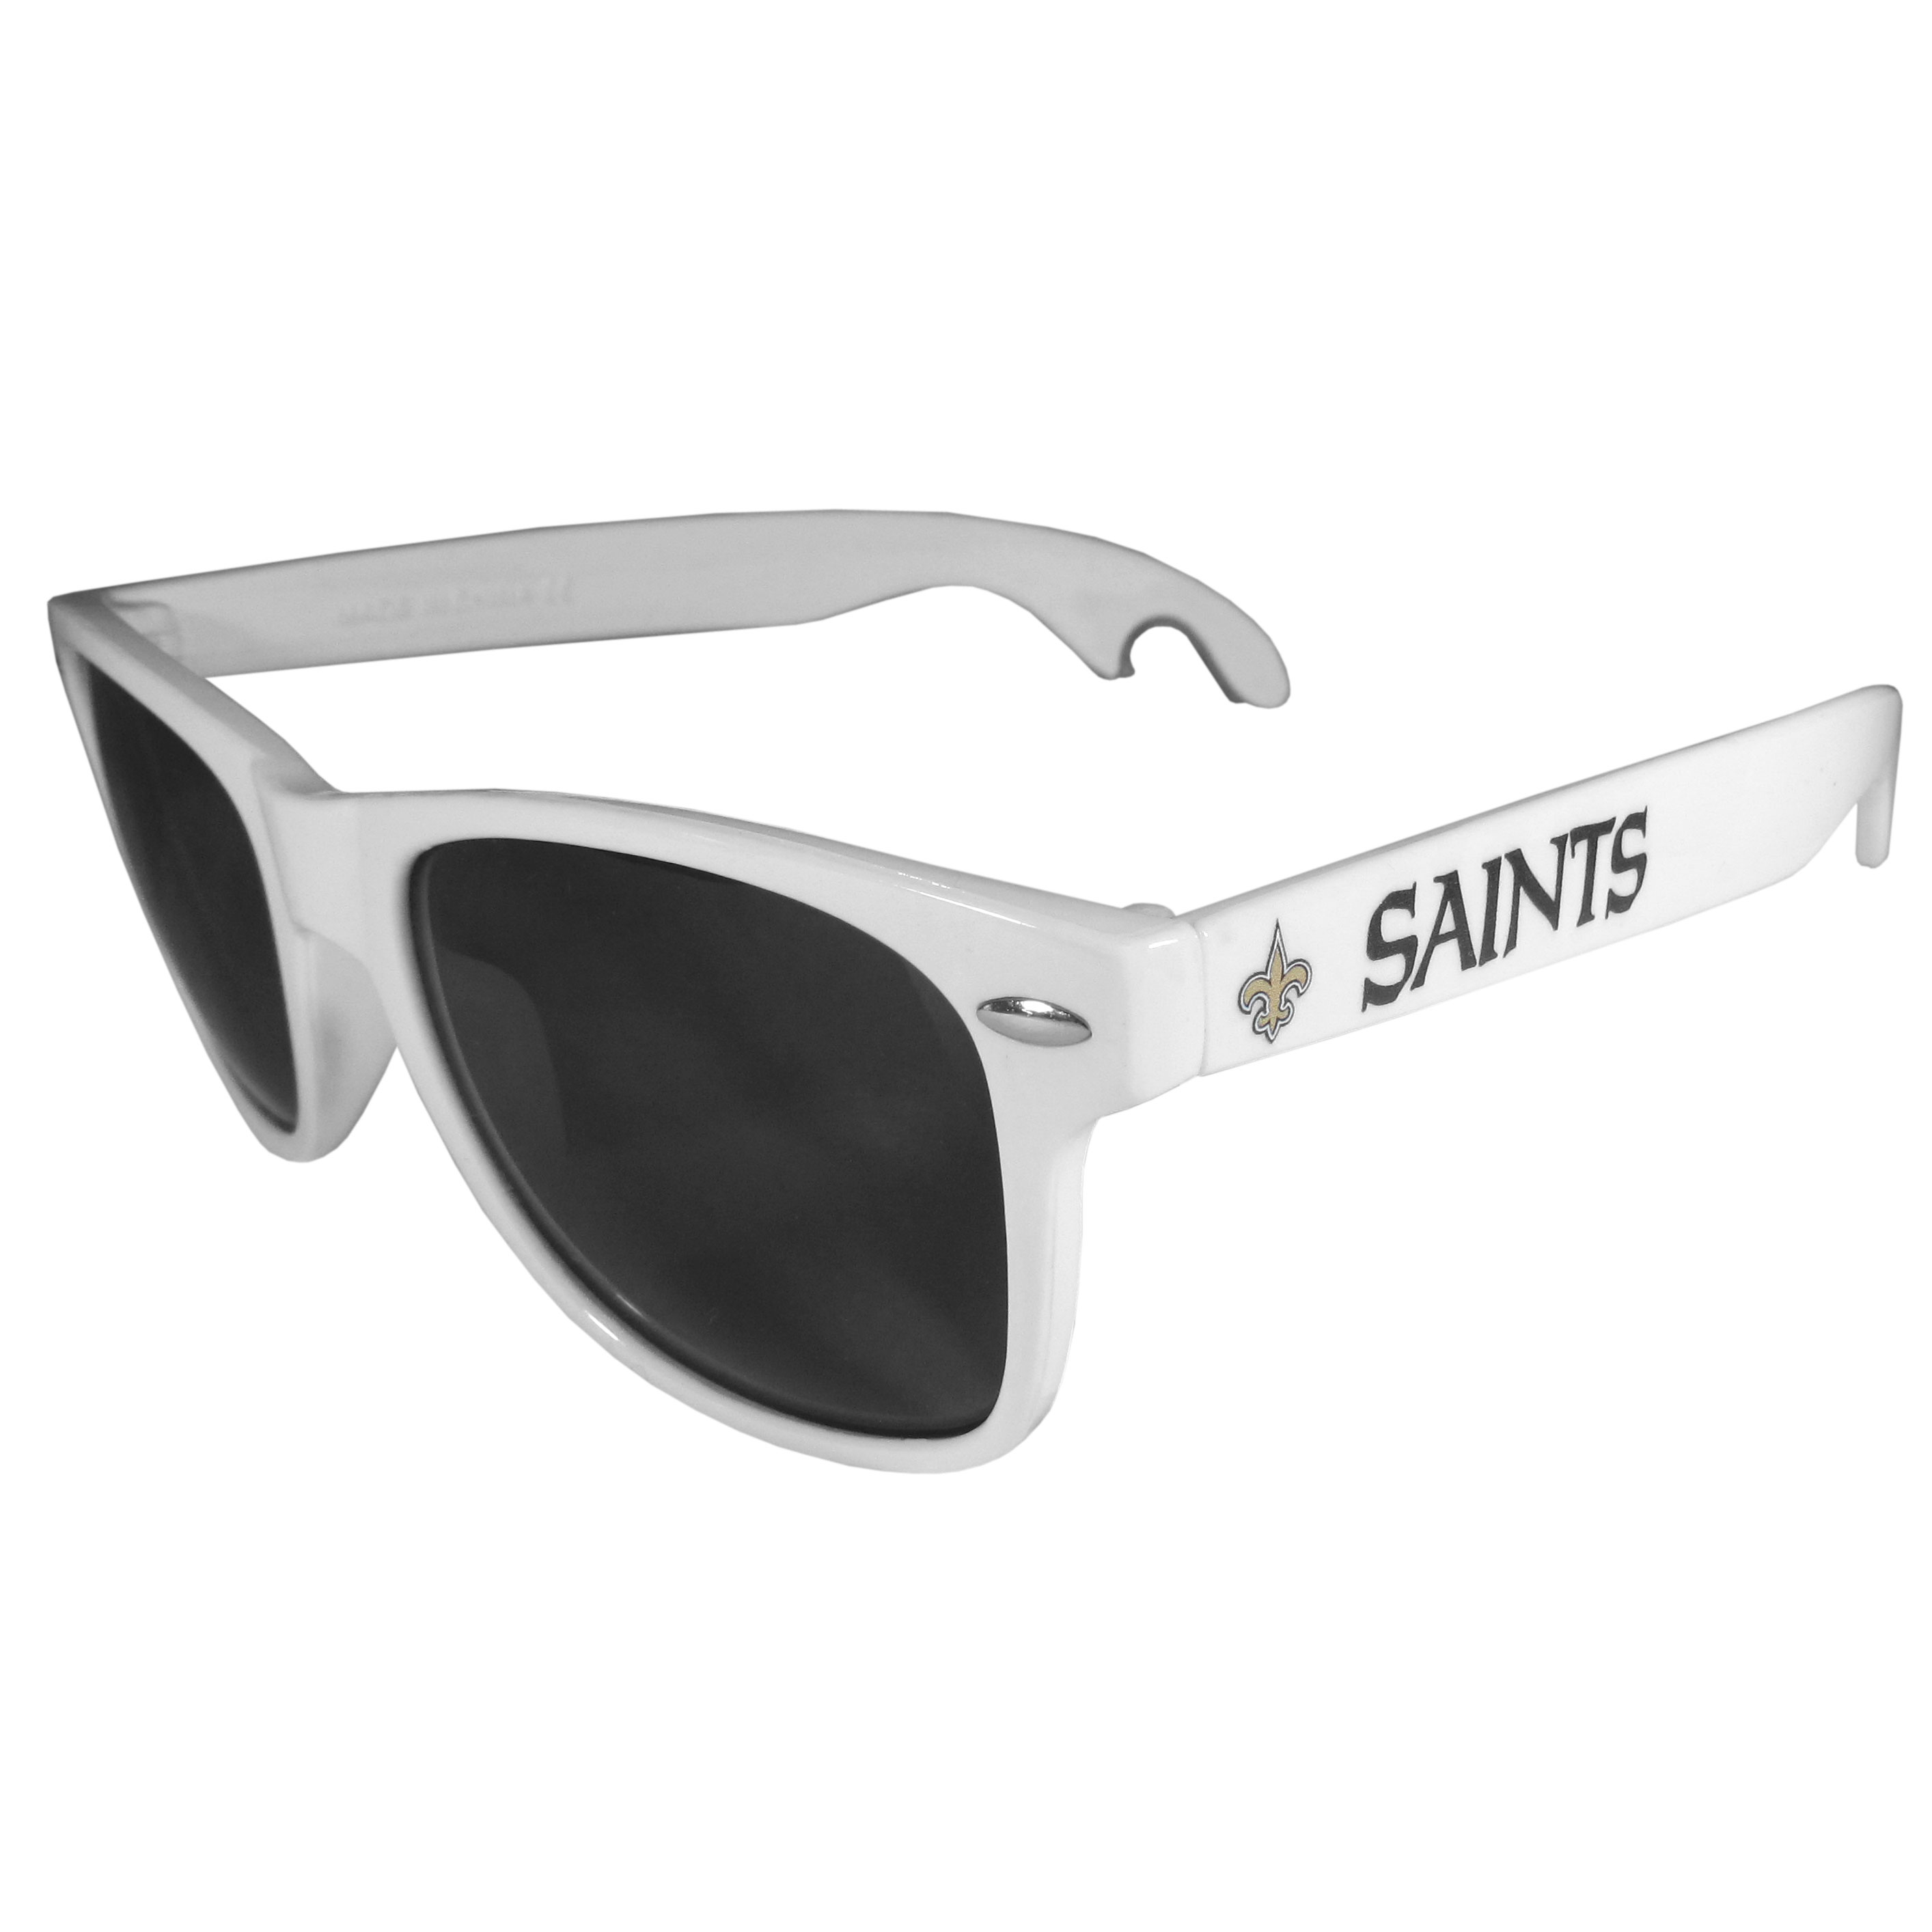 New Orleans Saints Beachfarer Bottle Opener Sunglasses, White - Seriously, these sunglasses open bottles! Keep the party going with these amazing New Orleans Saints bottle opener sunglasses. The stylish retro frames feature team designs on the arms and functional bottle openers on the end of the arms. Whether you are at the beach or having a backyard BBQ on game day, these shades will keep your eyes protected with 100% UVA/UVB protection and keep you hydrated with the handy bottle opener arms.